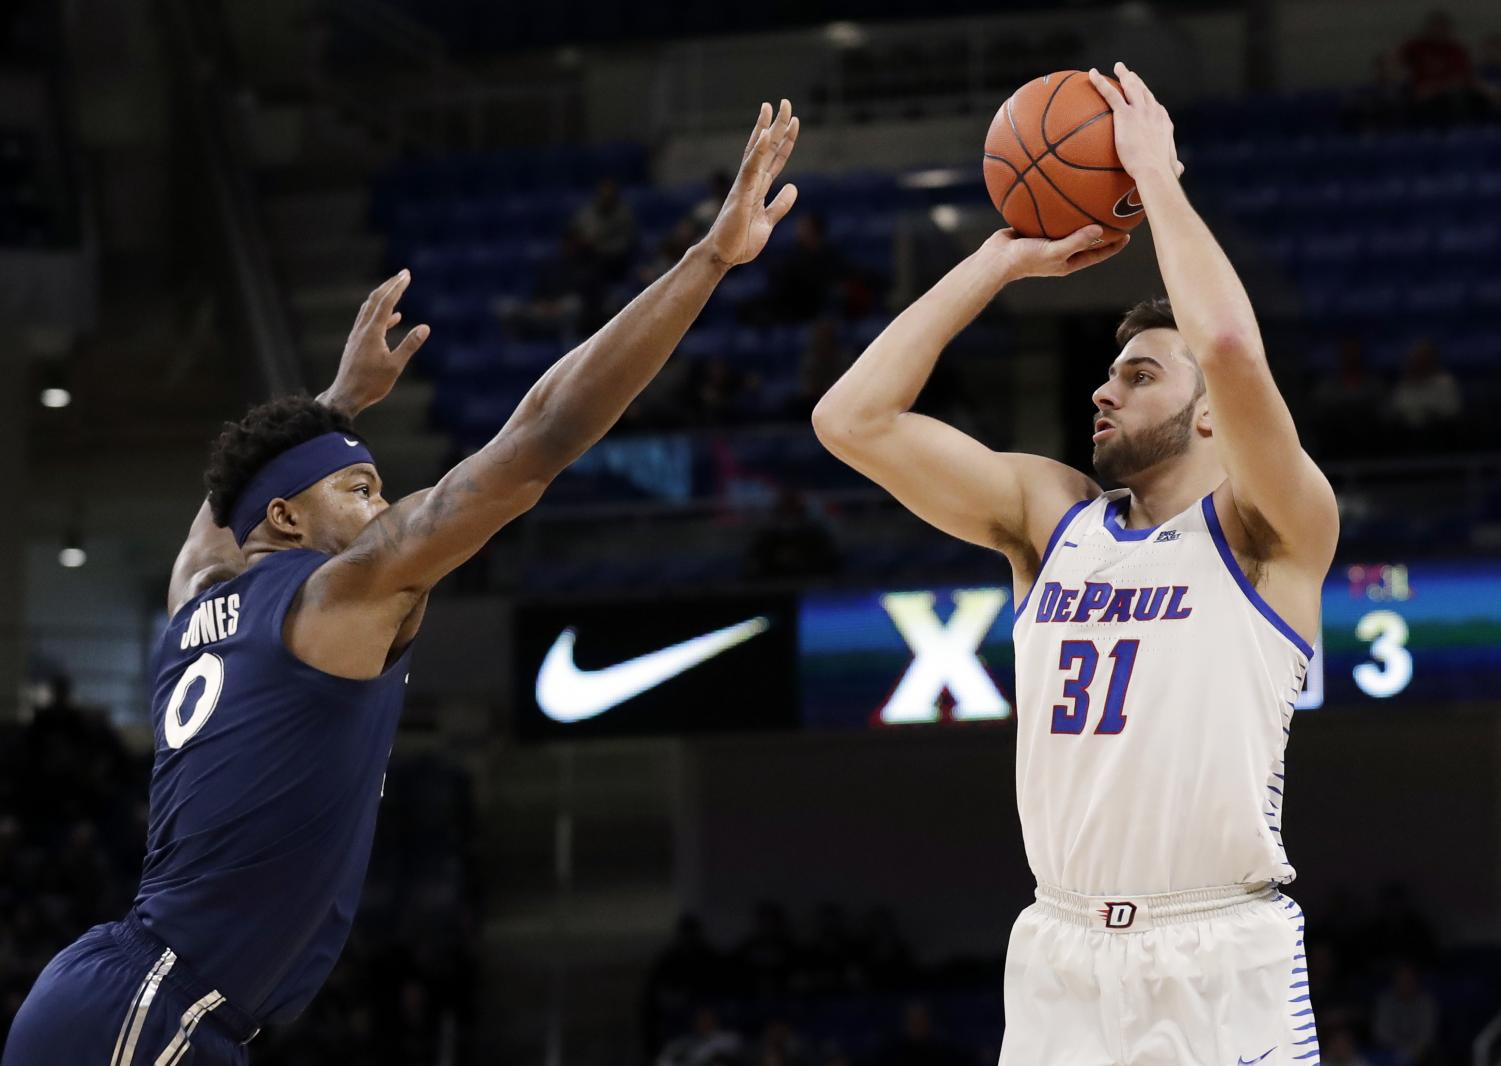 DePaul forward Max Strus, right, shoots against Xavier forward Tyrique Jones during the second half of an NCAA college basketball game Saturday, Dec. 29, 2018, in Chicago. Xavier won 74-65. Nam Y. Huh | AP